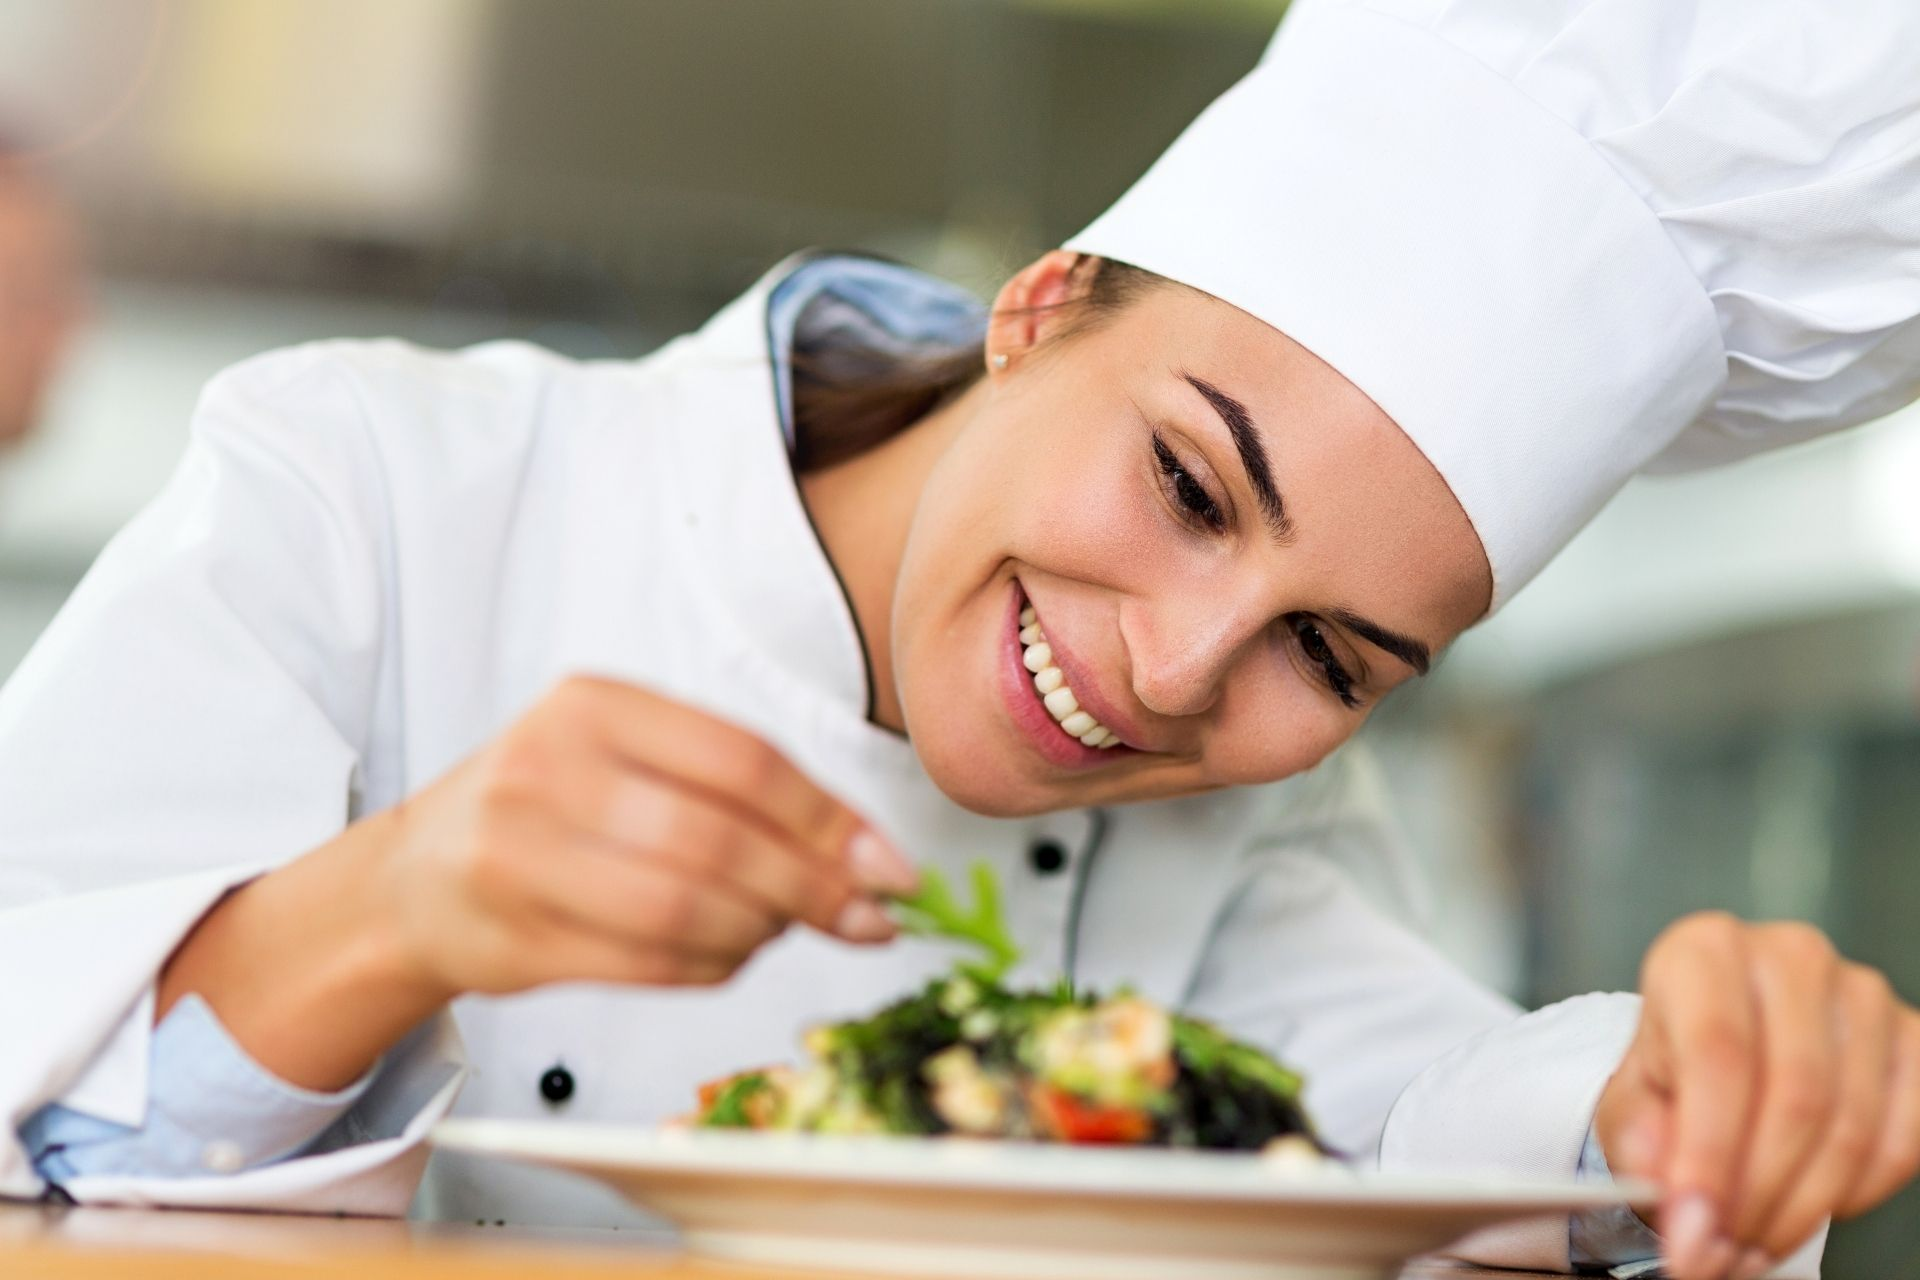 A chef garnishing a plate of food